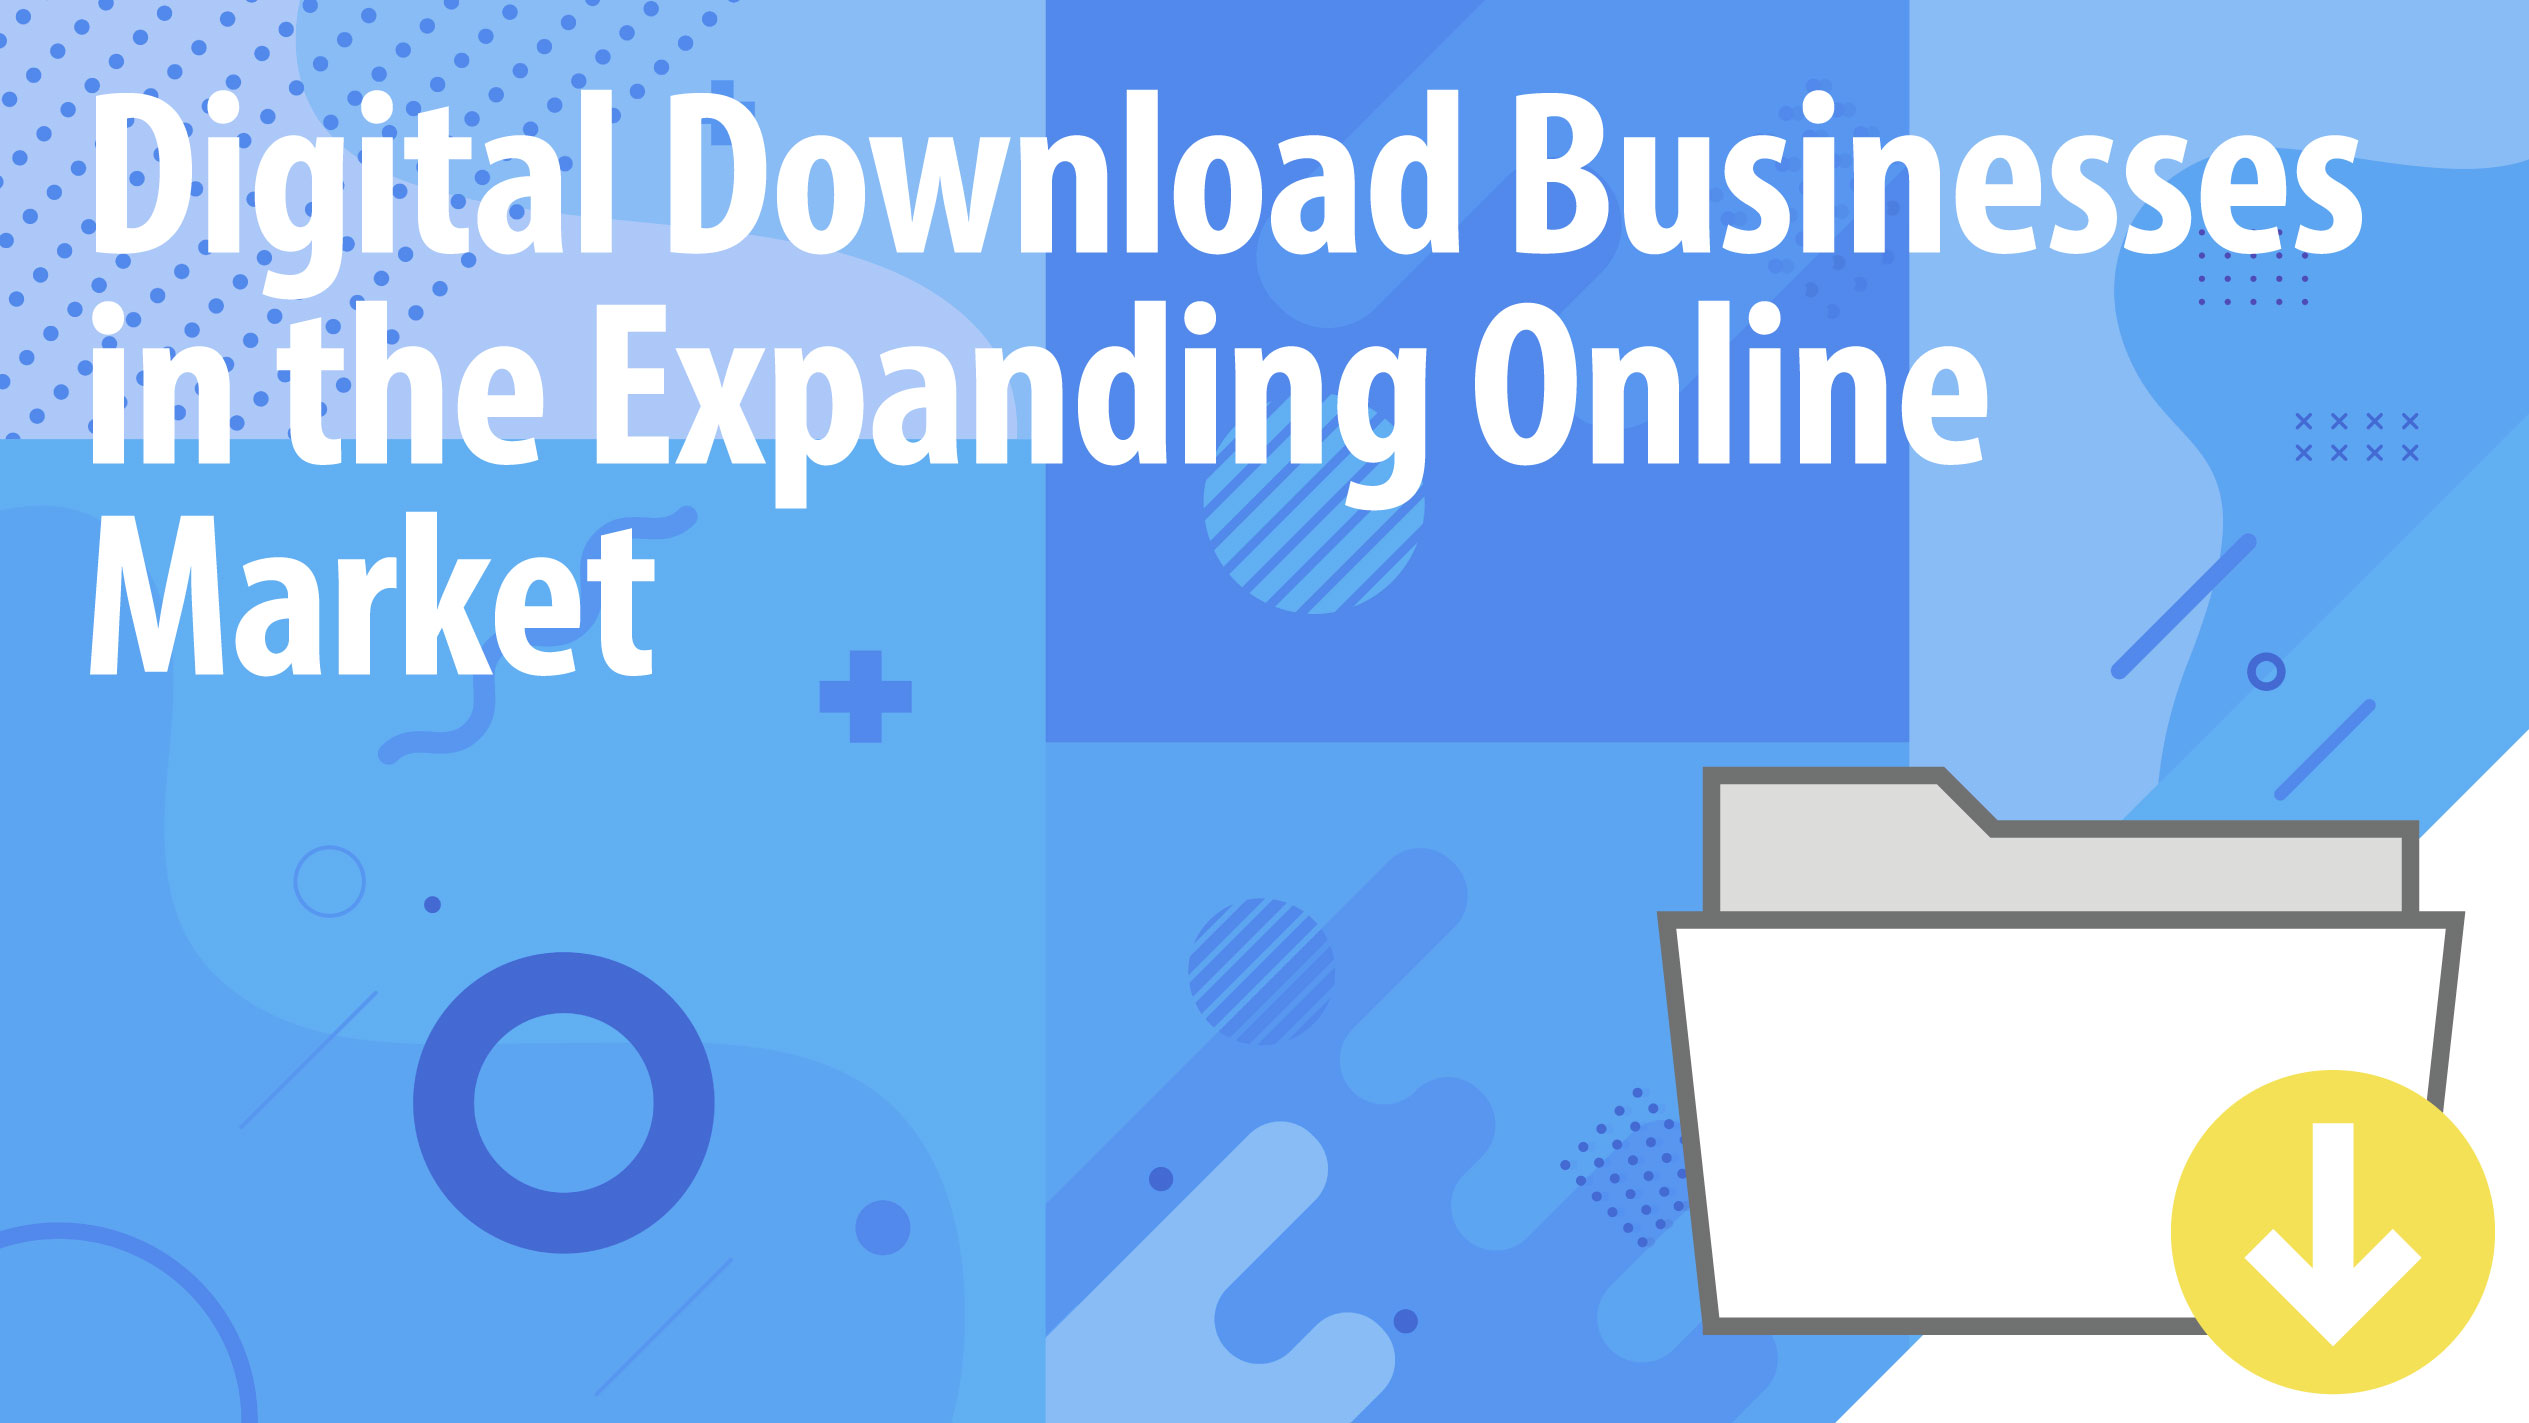 Digital Download Businesses in the Expanding Online Market